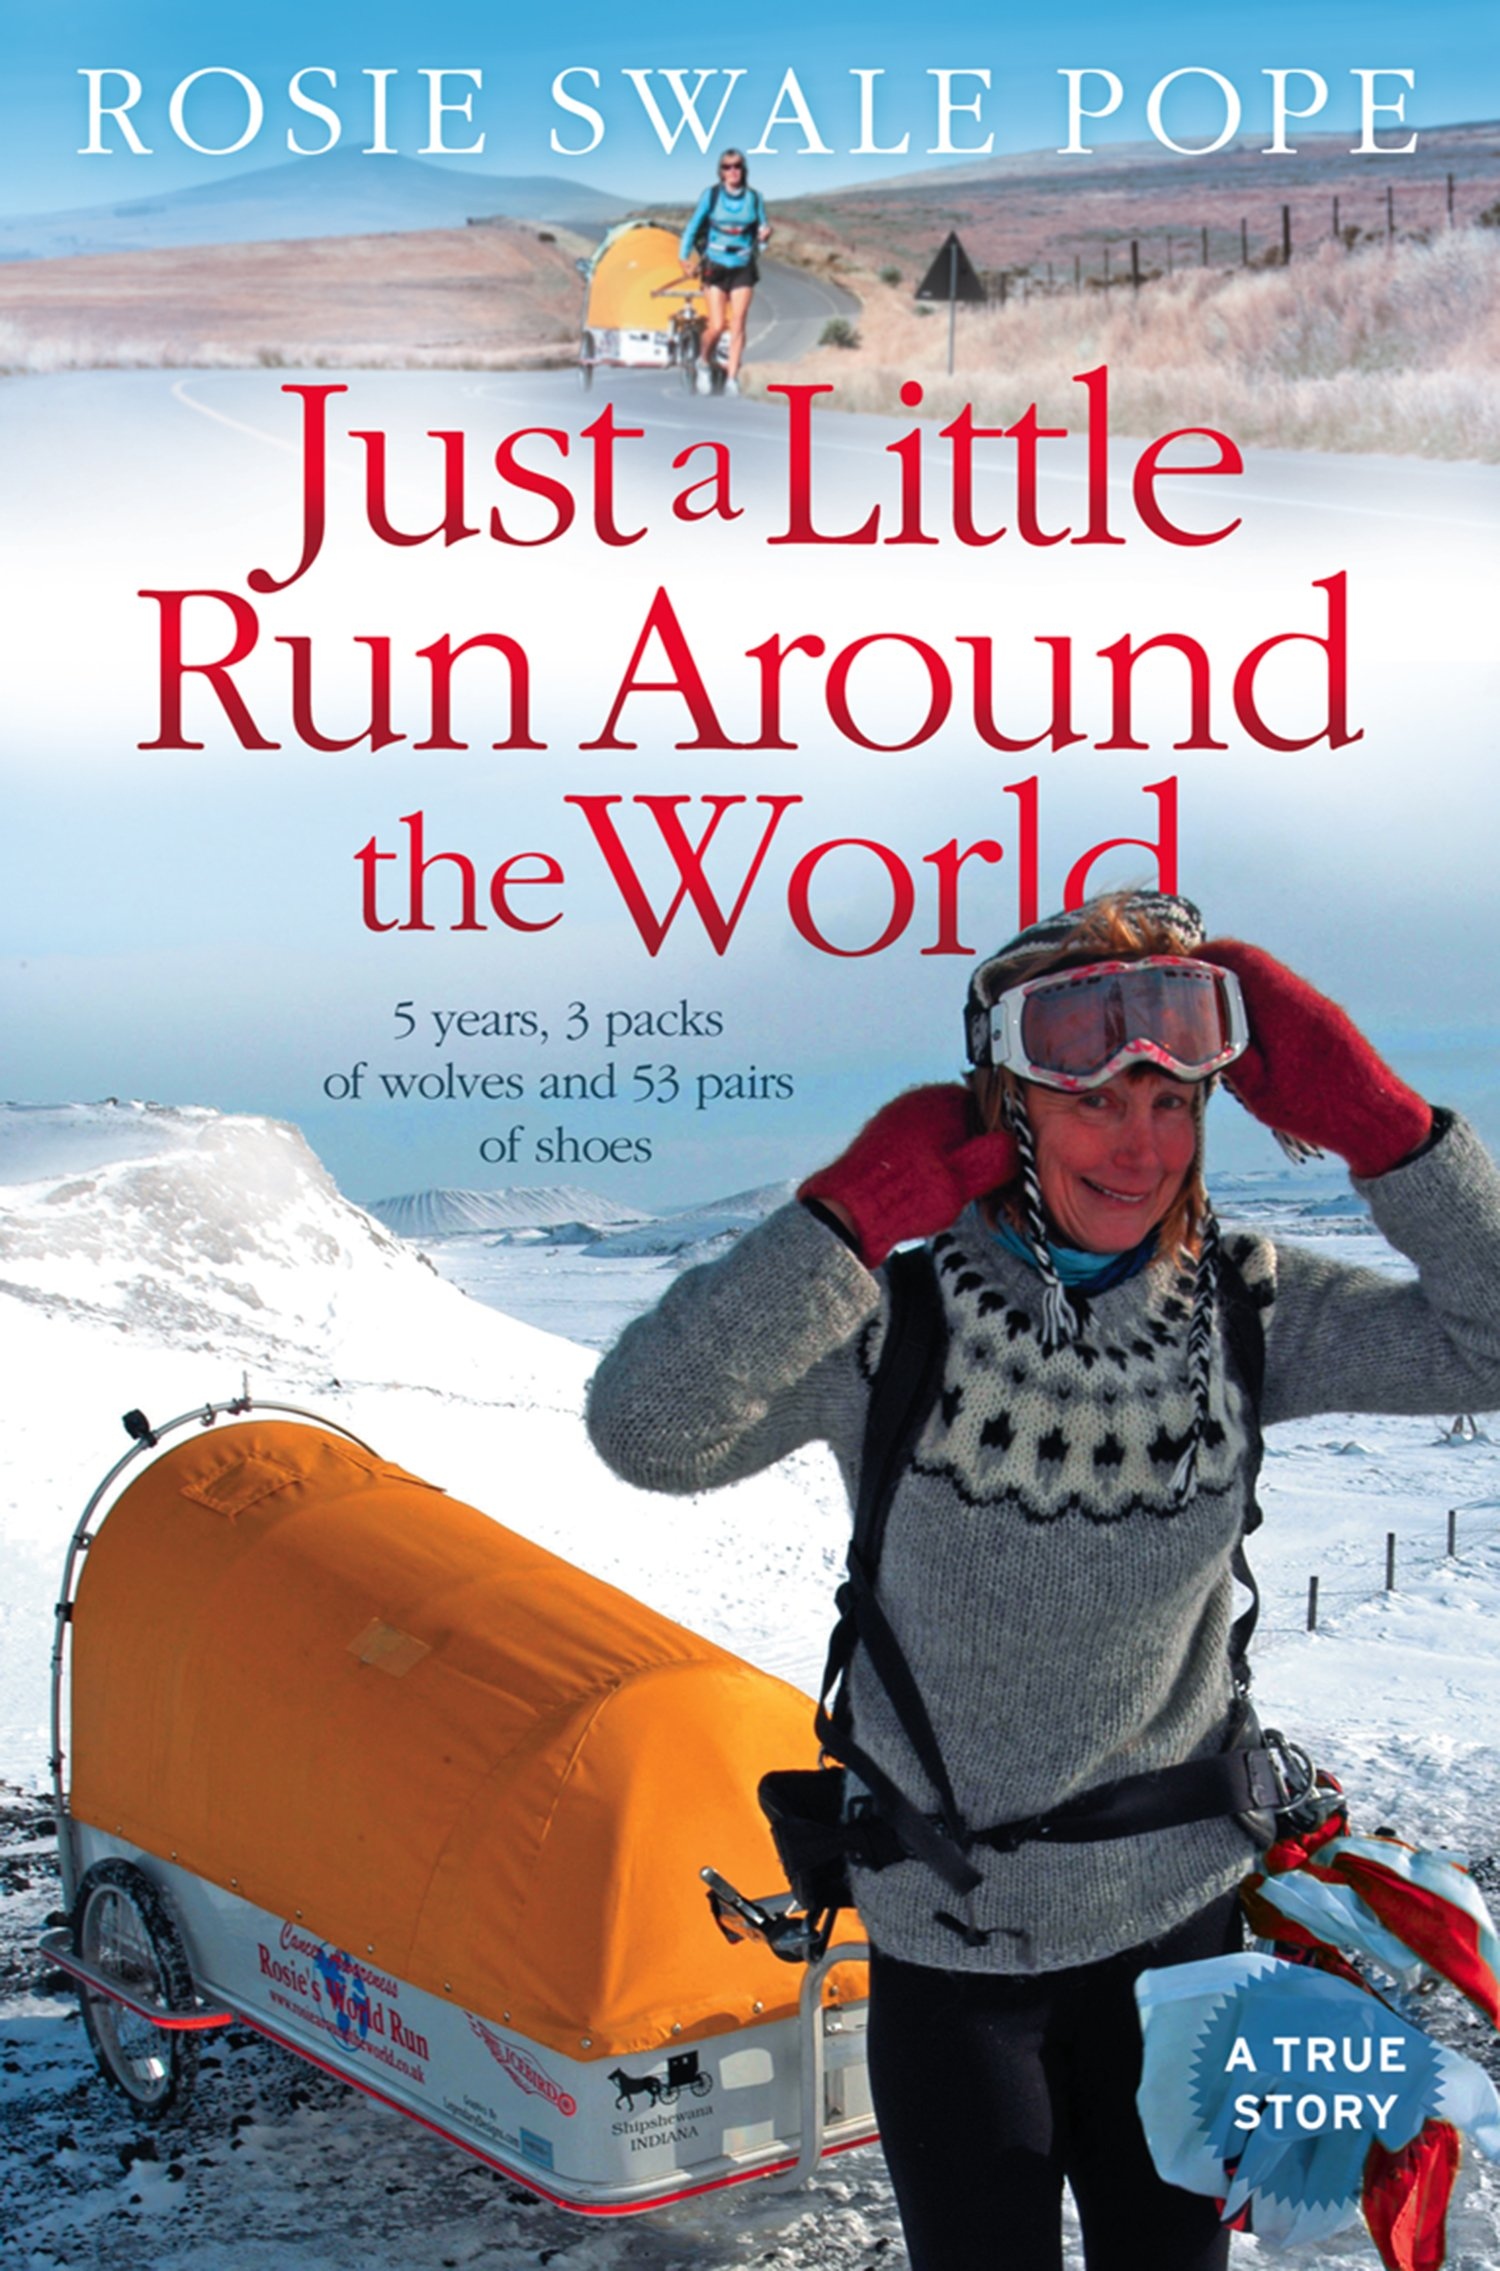 Just a Little Run Around the World: 5 Years, 3 Packs of Wolves and 53 Pairs of Shoes: 5 Years, 29 Marriage Proposals and 53 Pairs of Shoes (English Edition)